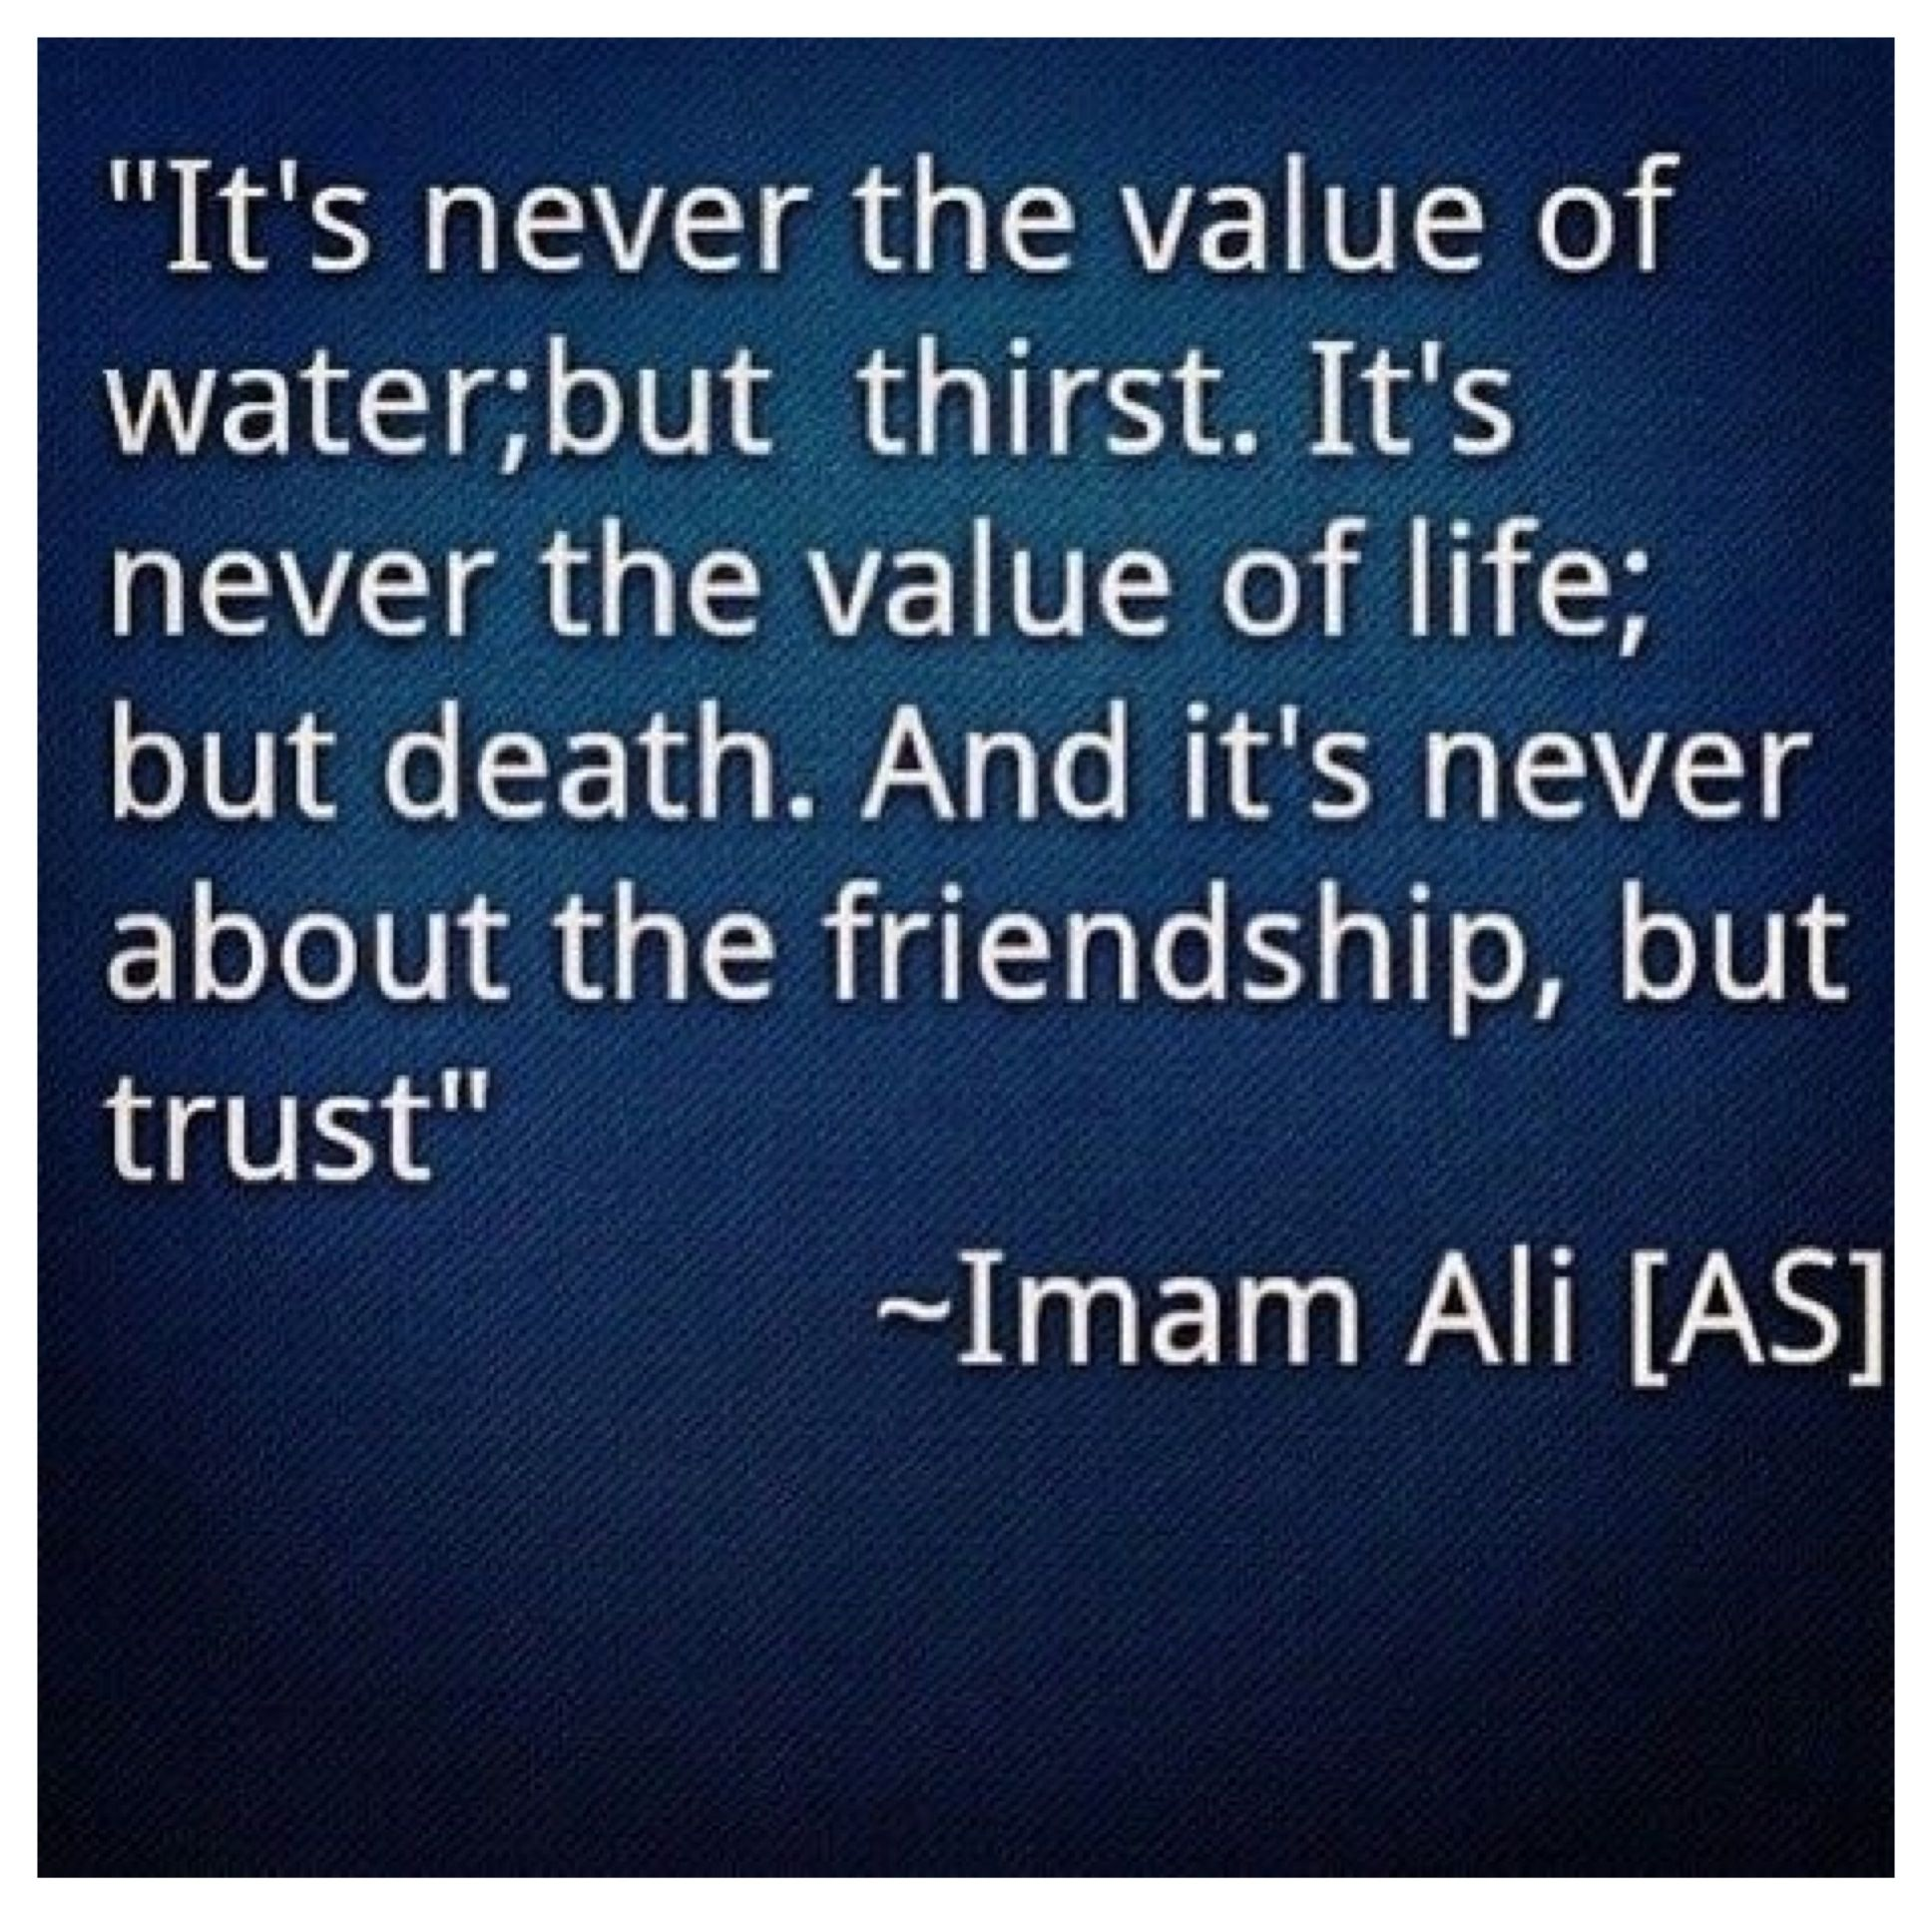 Islamic Quotes About Friendship Imam Ali As  Religious Quotes  Pinterest  Imam Ali Islam And